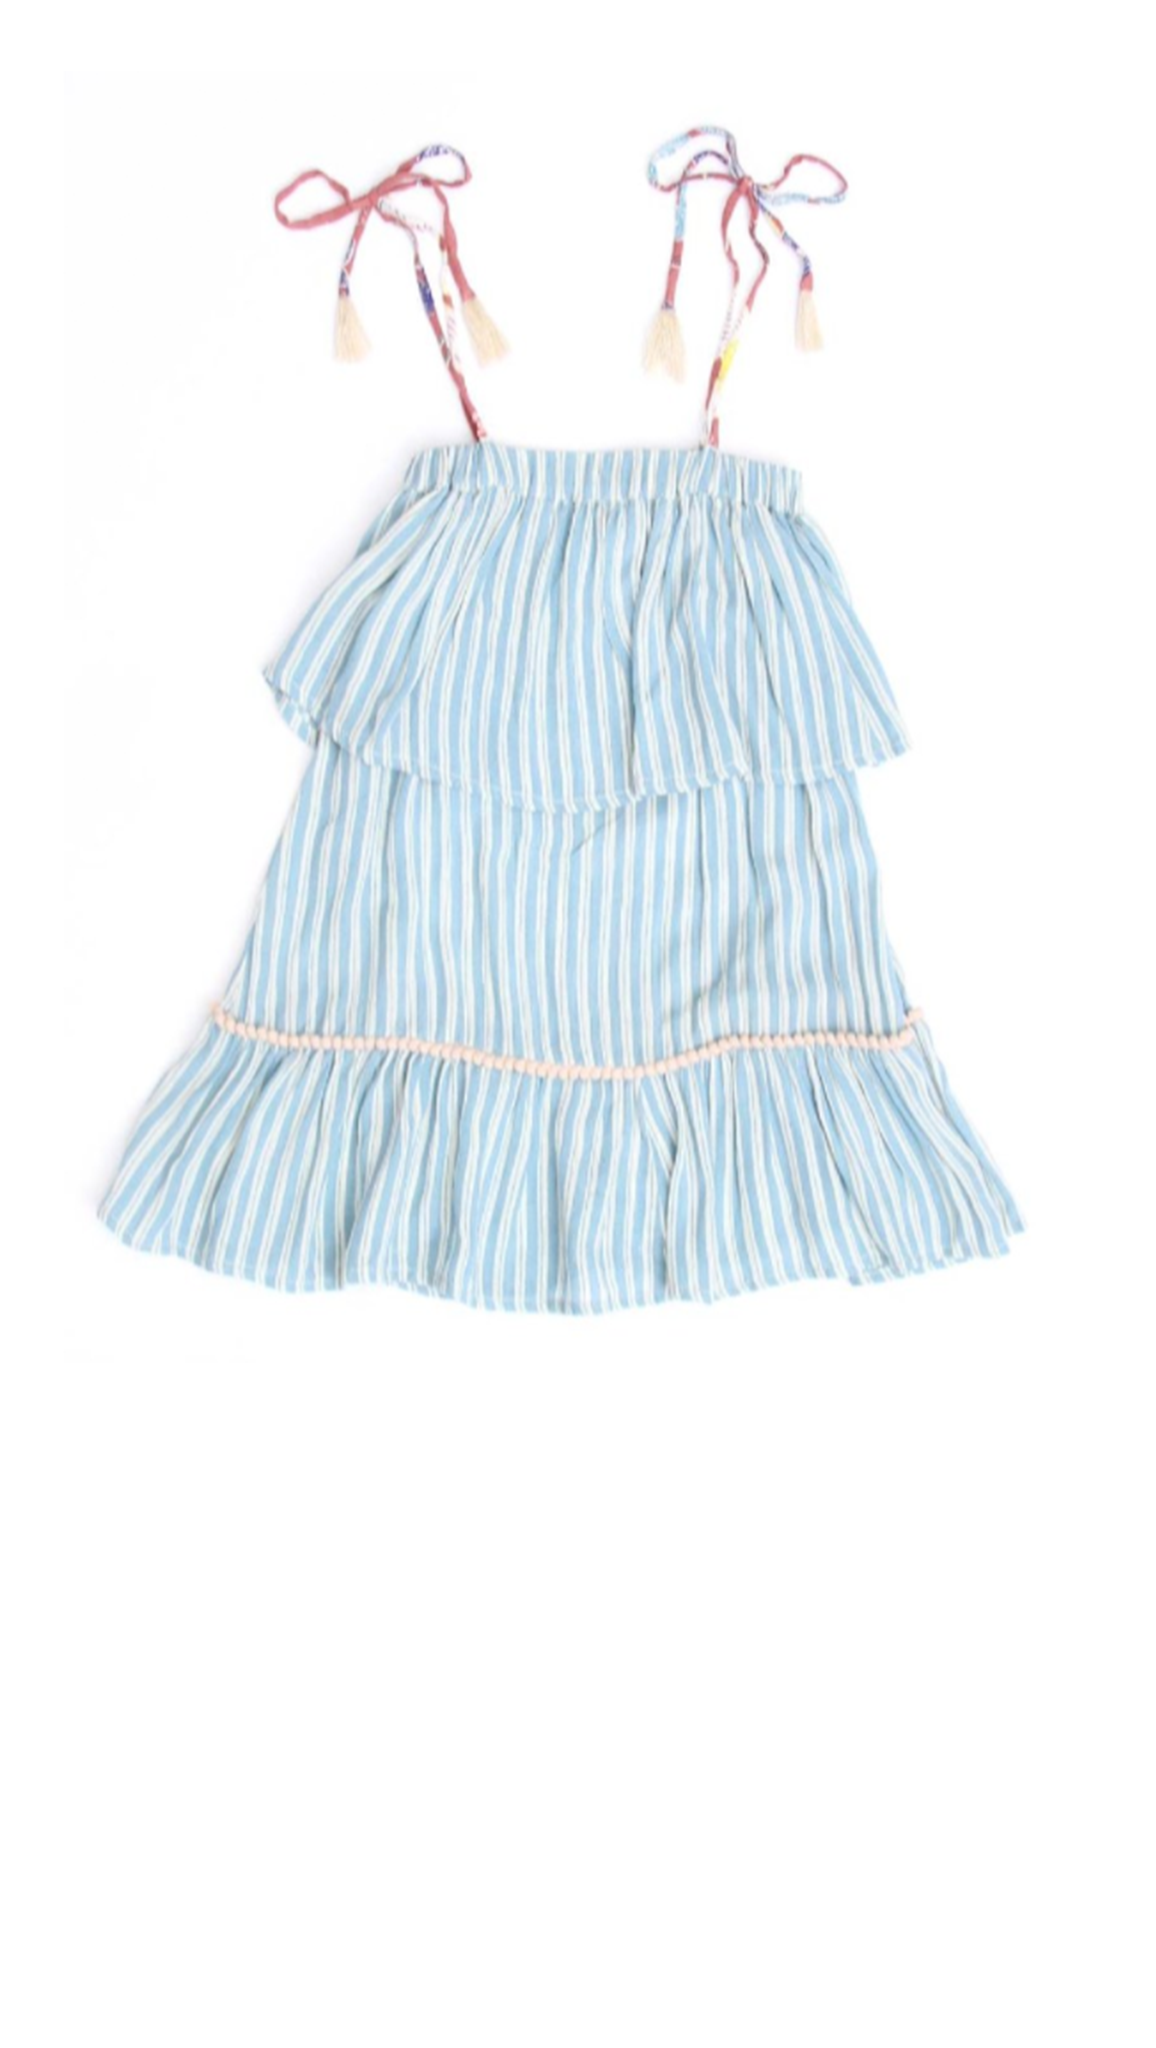 Blue and white stripe girls ruffle dress with tie rust colored floral print straps